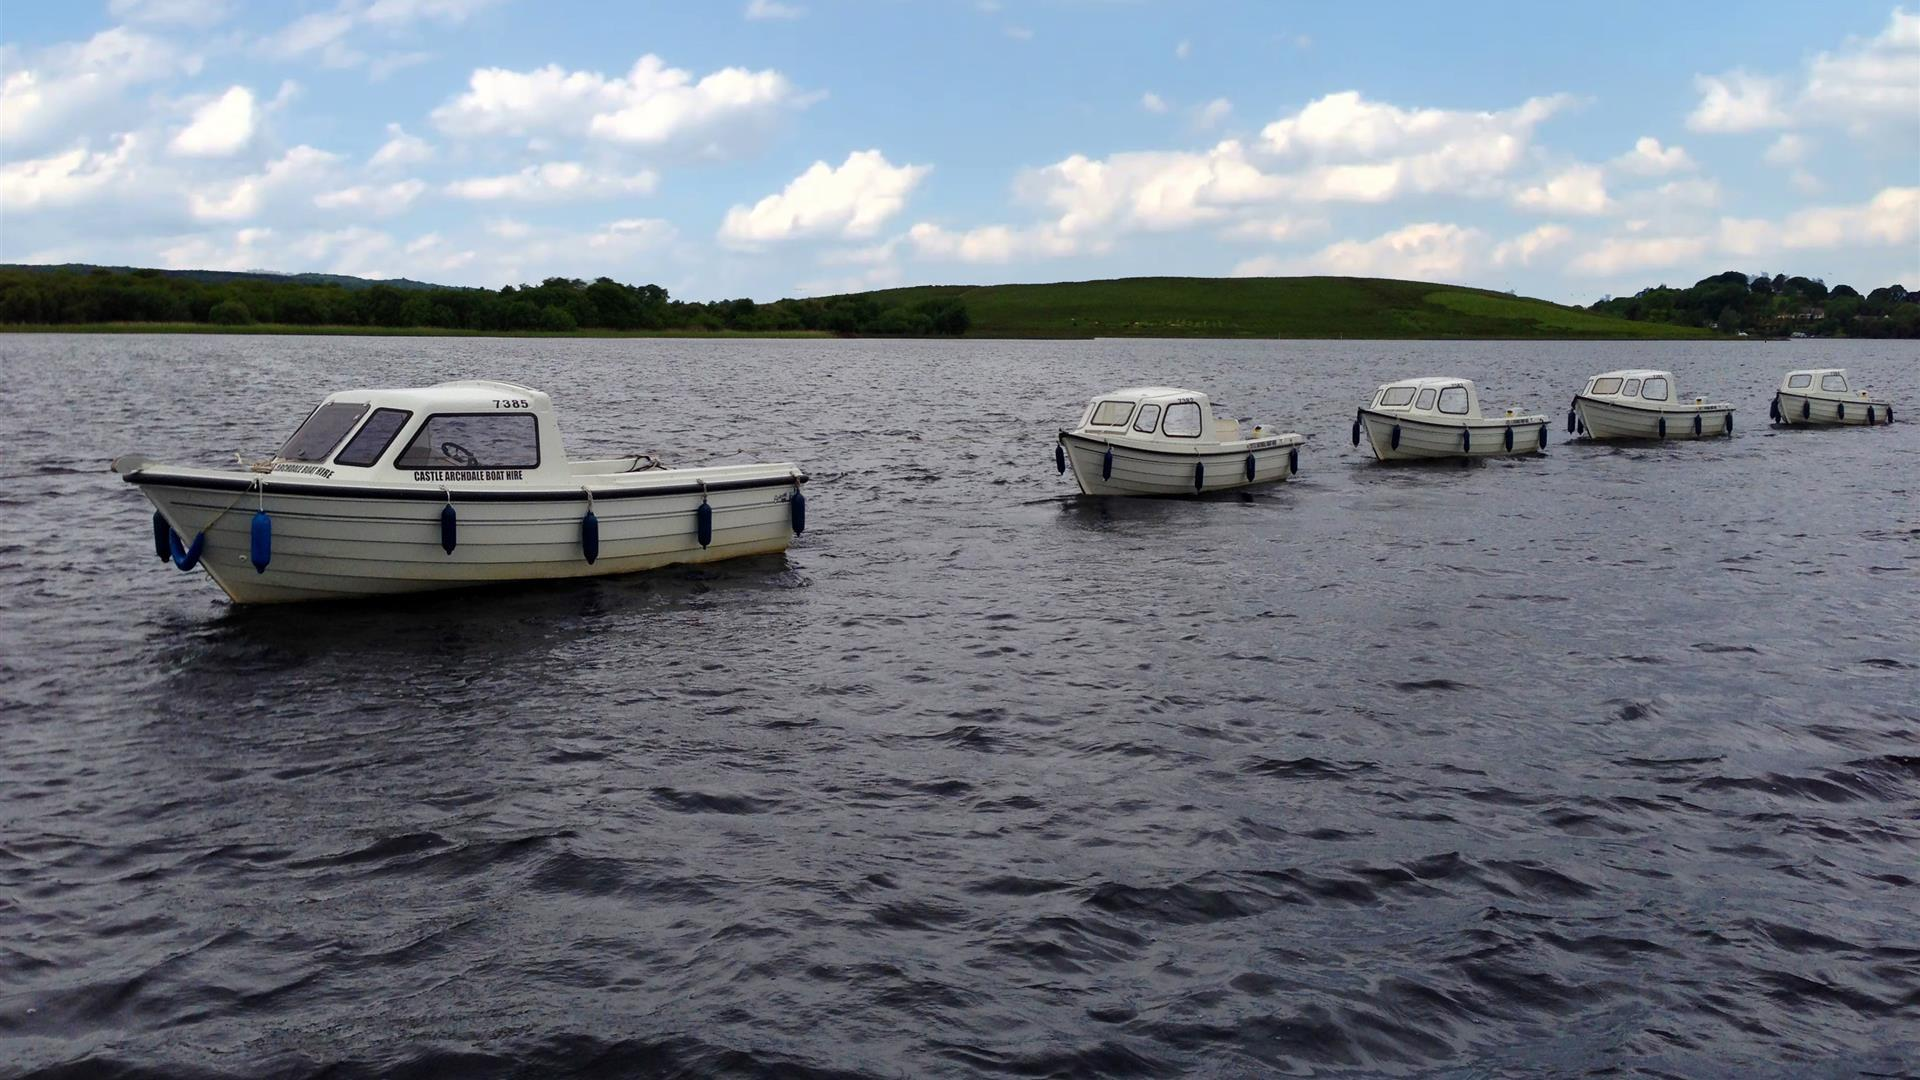 Castle Archdale Marina Boat Hire & Water Sports